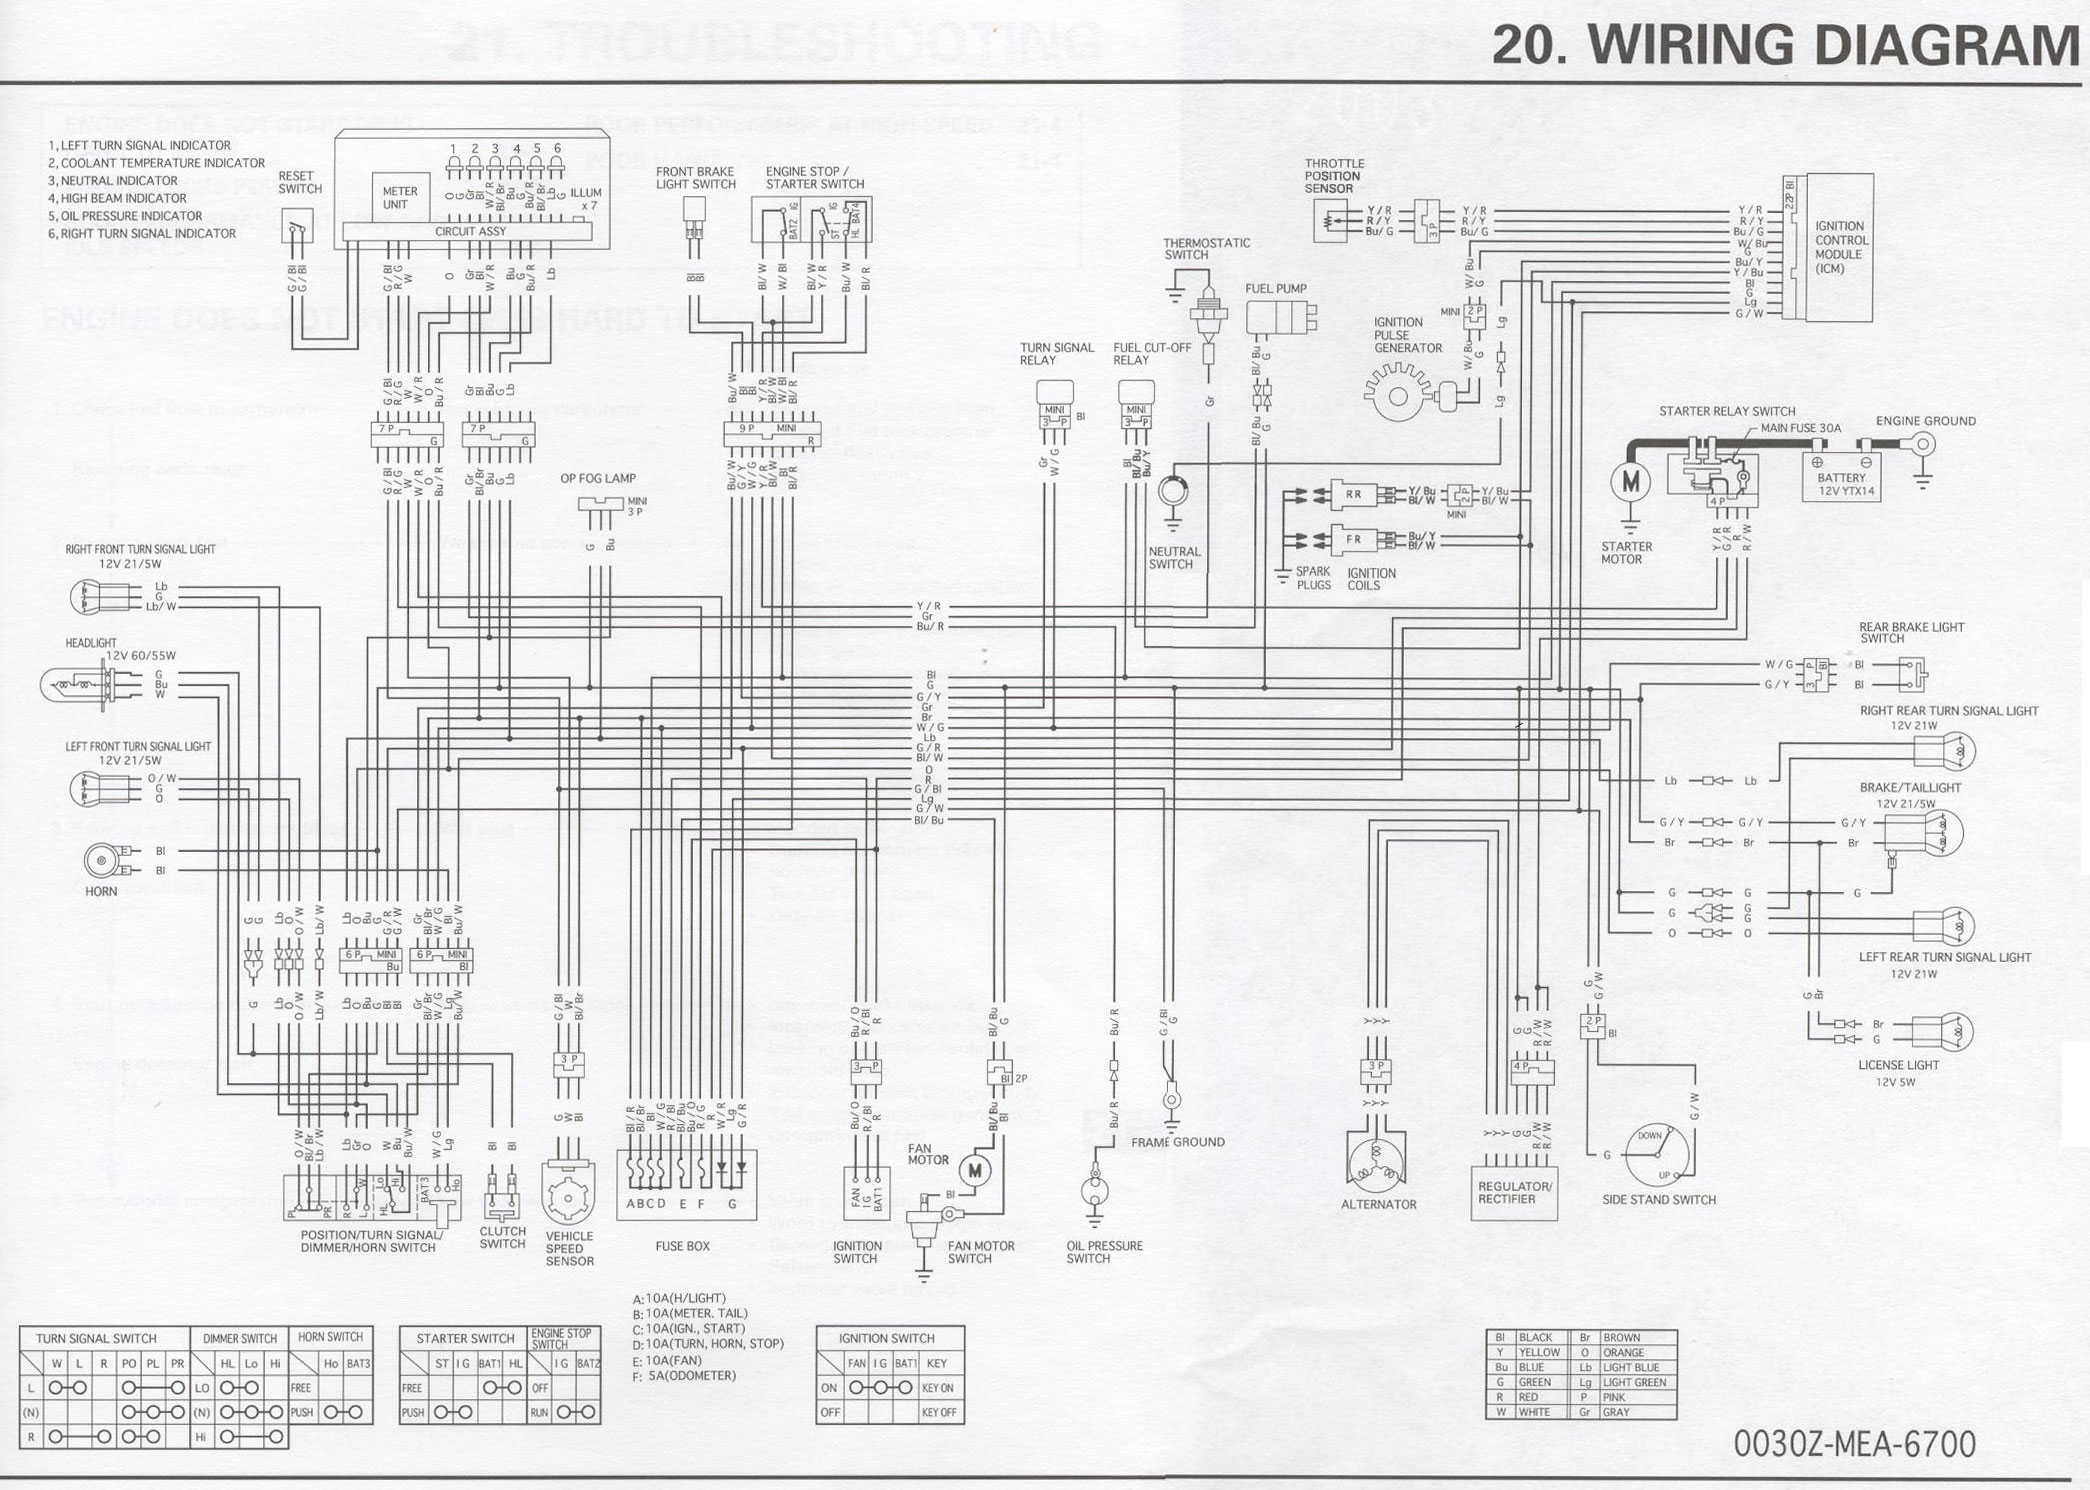 honda vtx 1300 wiring diagrams wiring diagram schema blog  vtx1300c wiring diagram wiring diagram data schema 2004 honda vtx 1300 wiring schematic honda vtx 1300 wiring diagrams